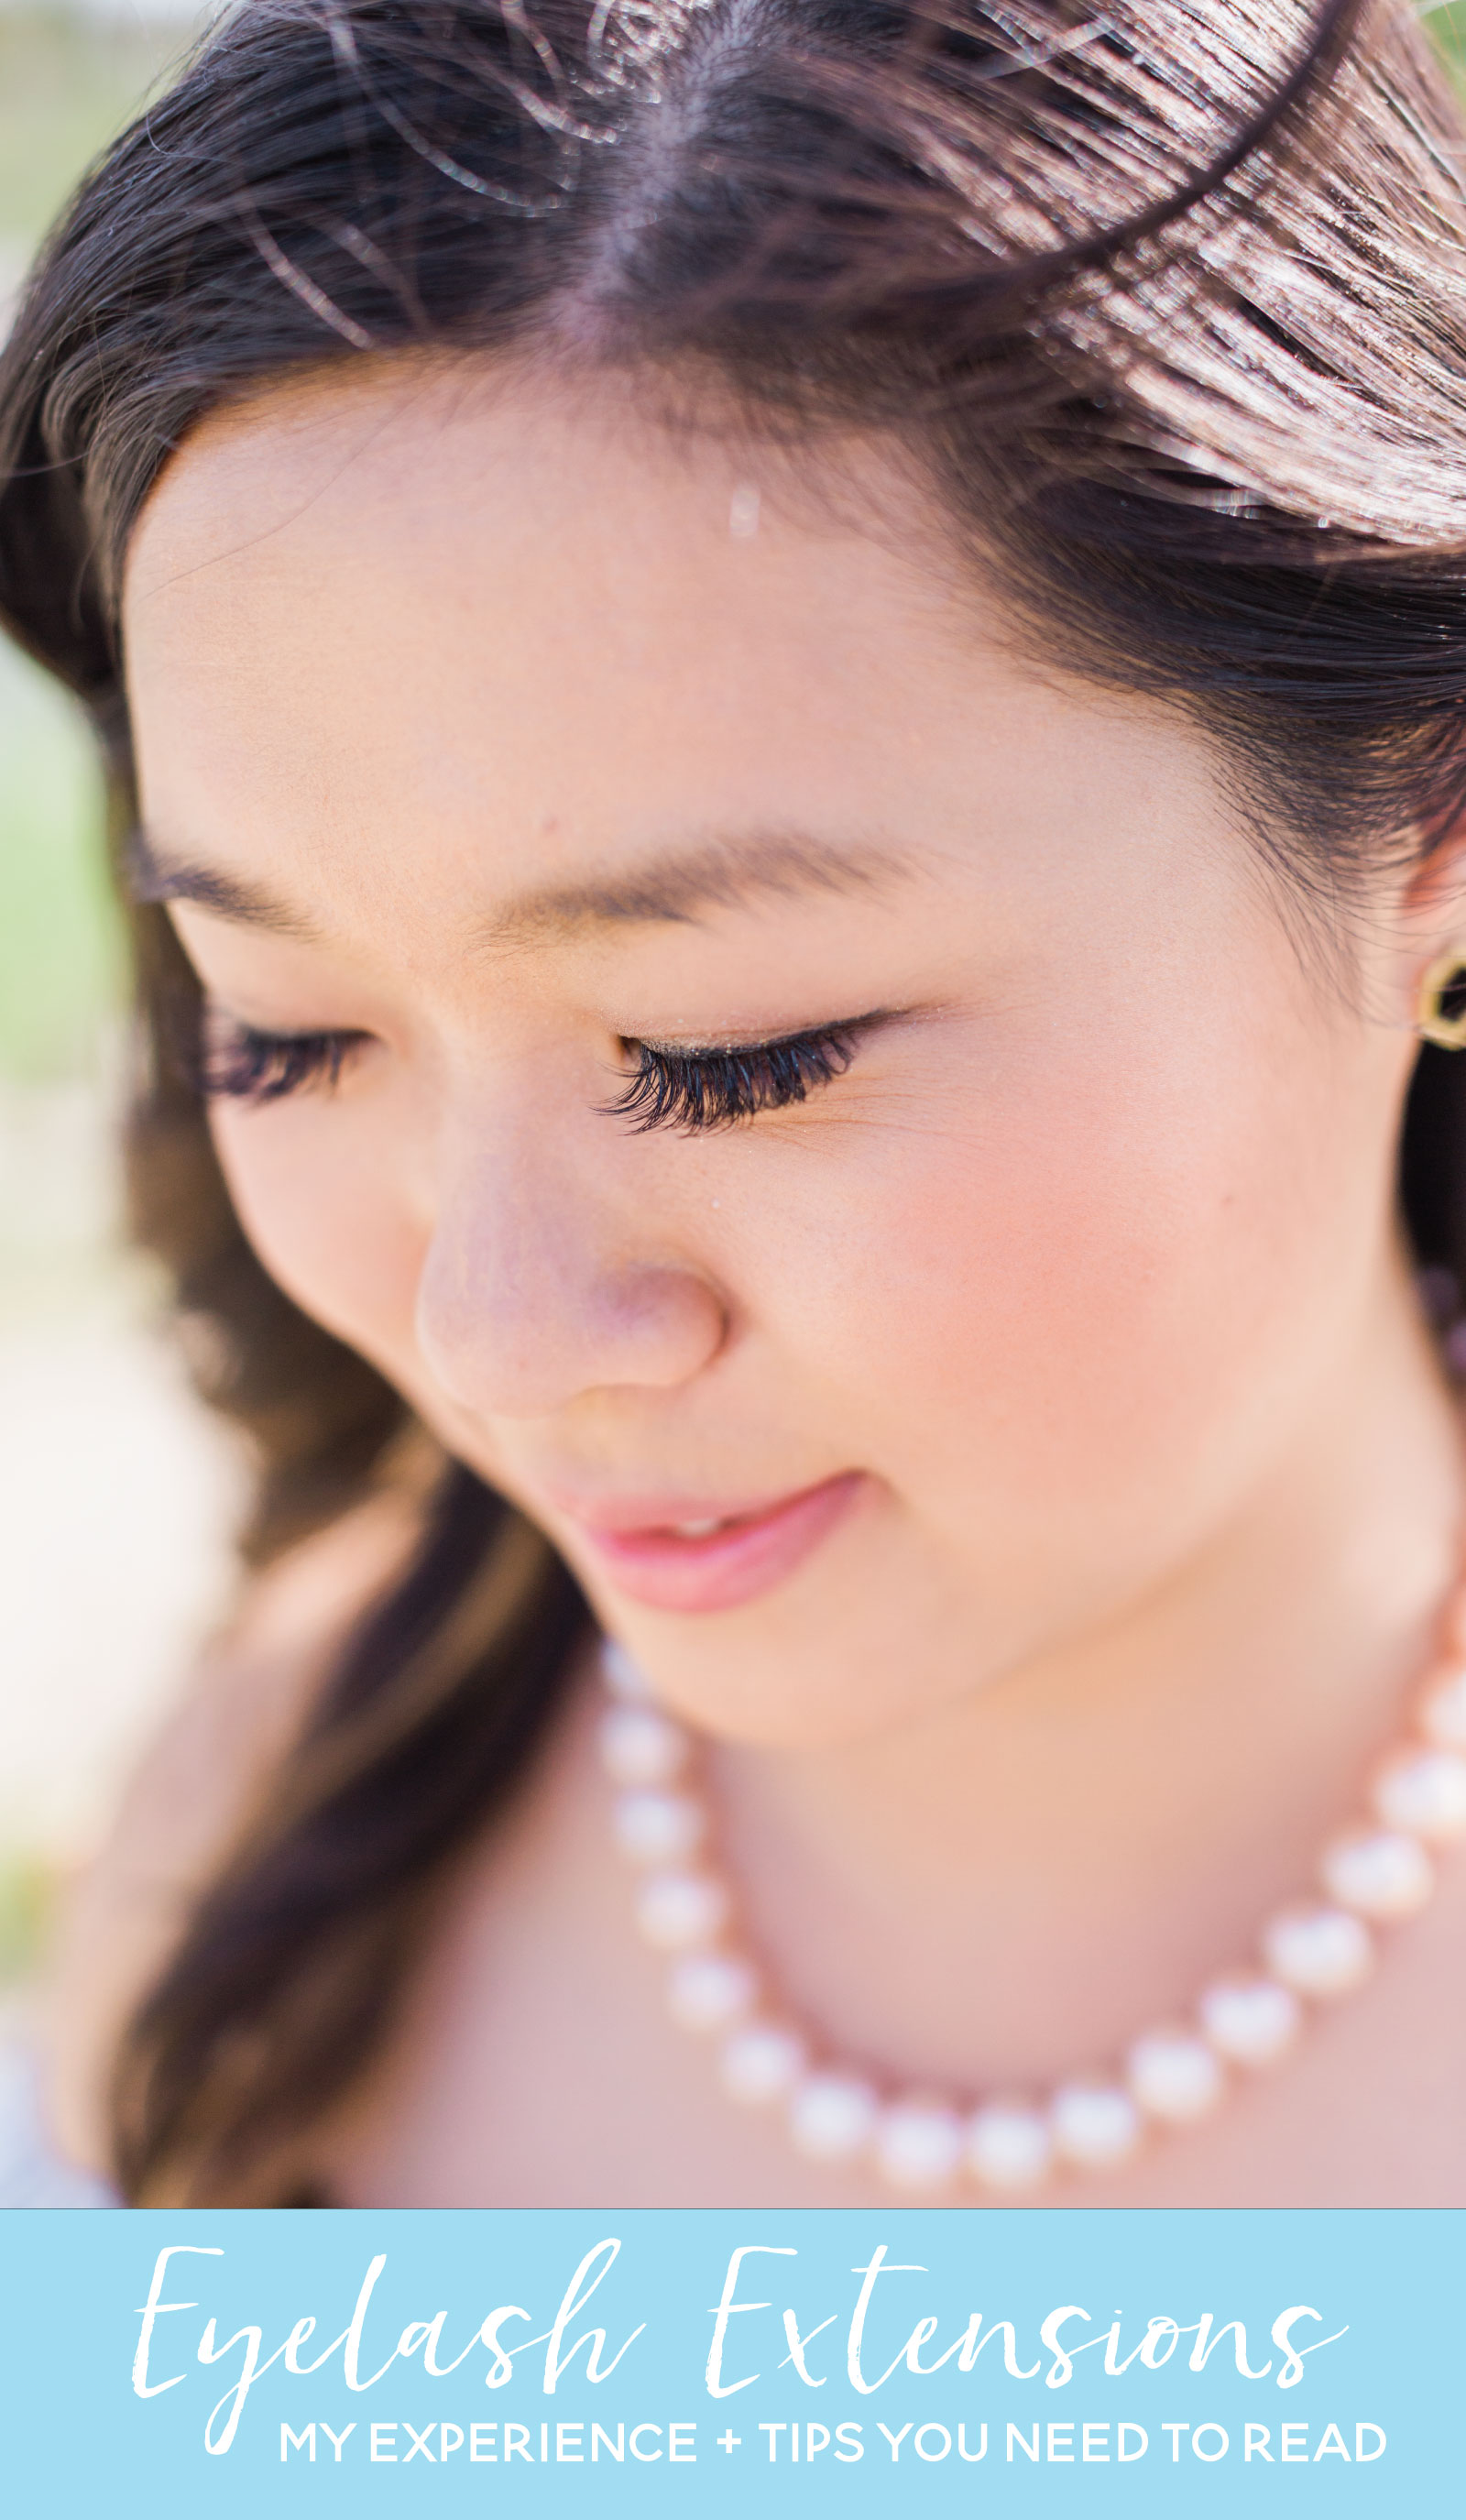 Eyelash Extensions: My Experience and Tips